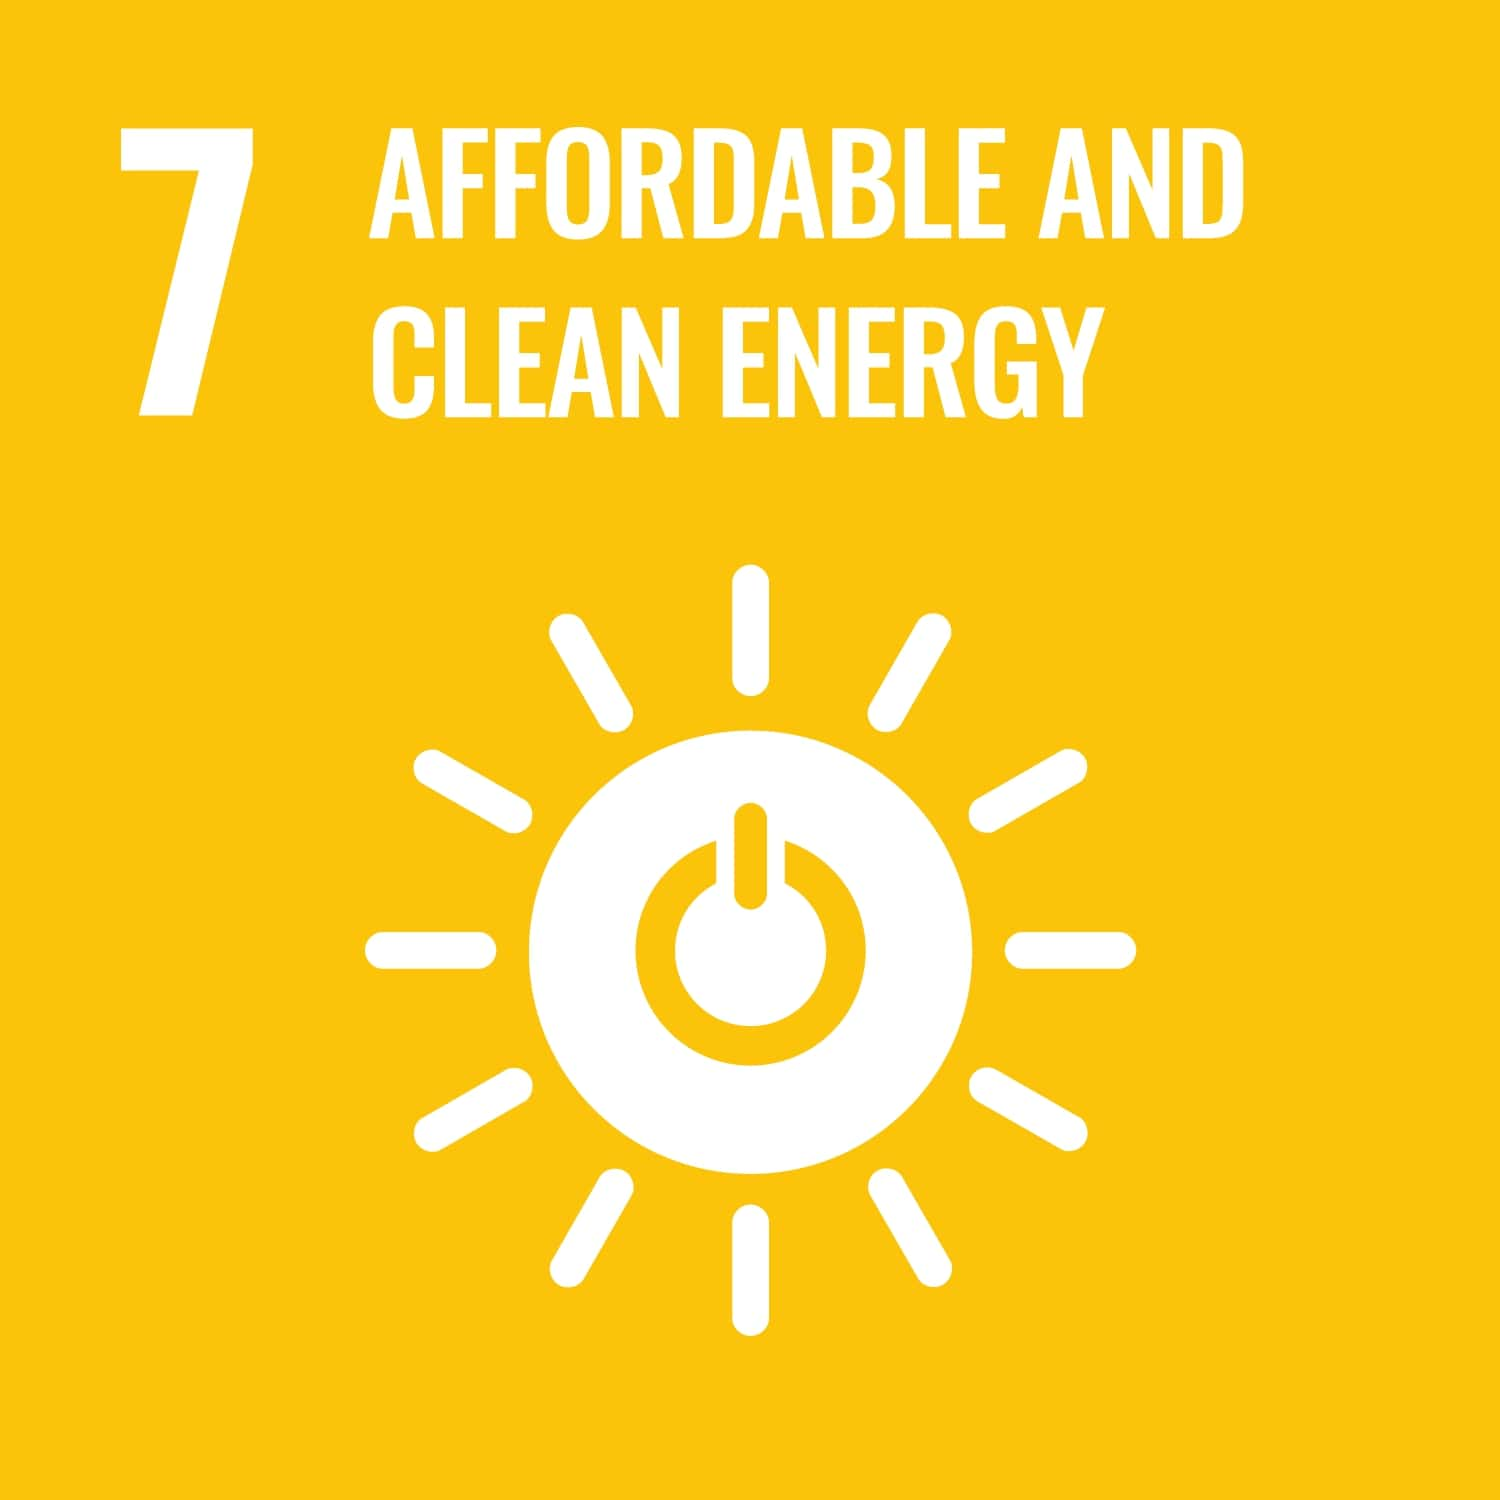 Un logo for clean and affordable energy